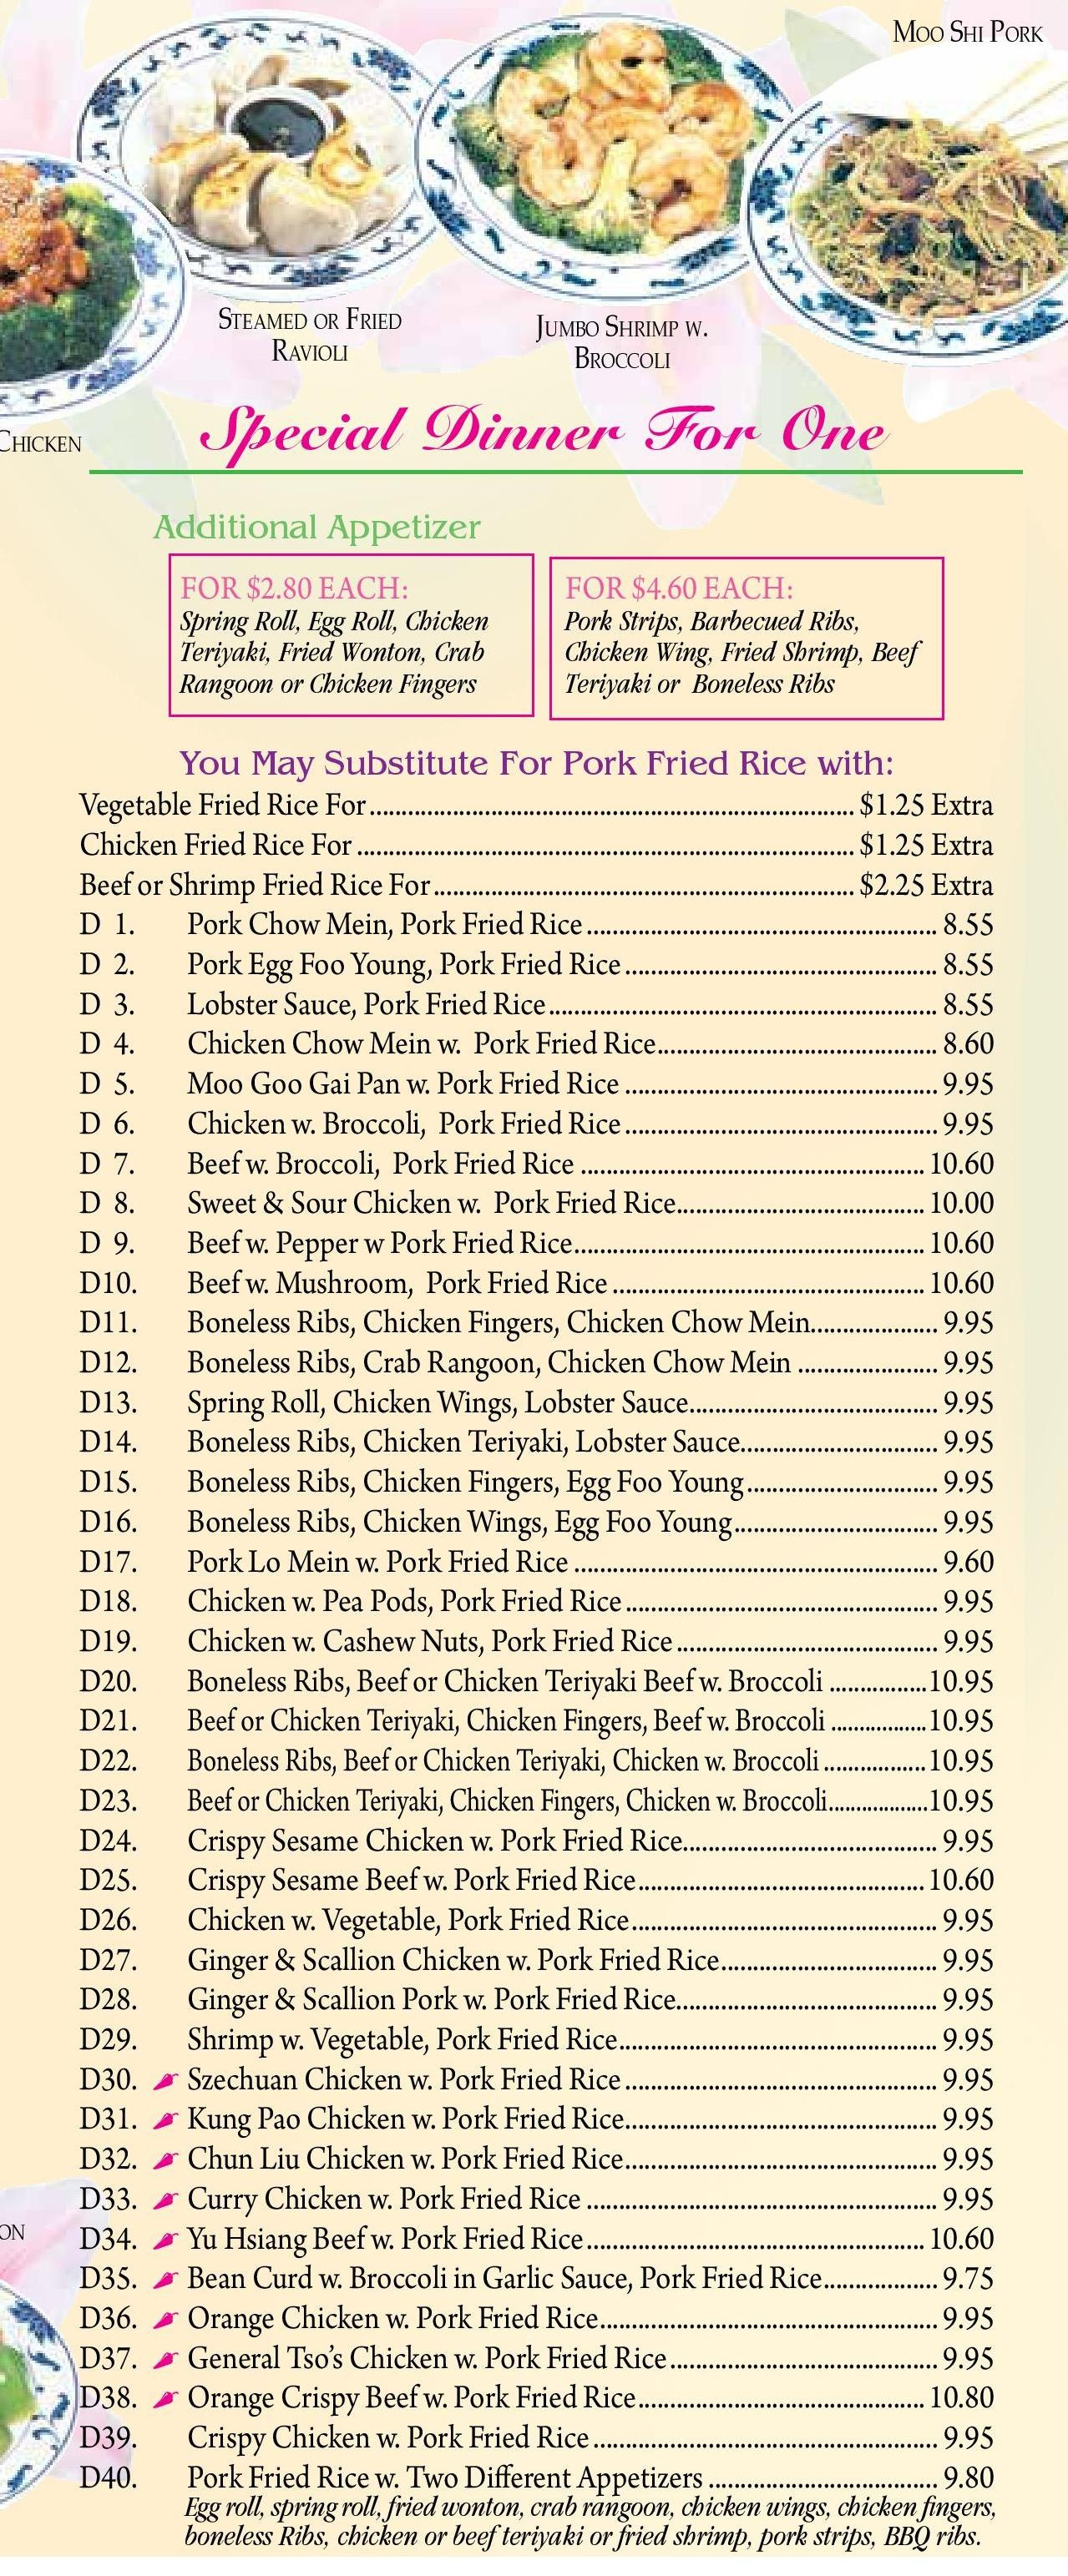 Mass Cut Coupons / Free Food Coupons Mailed To Me - Supercuts Free Haircut Printable Coupon